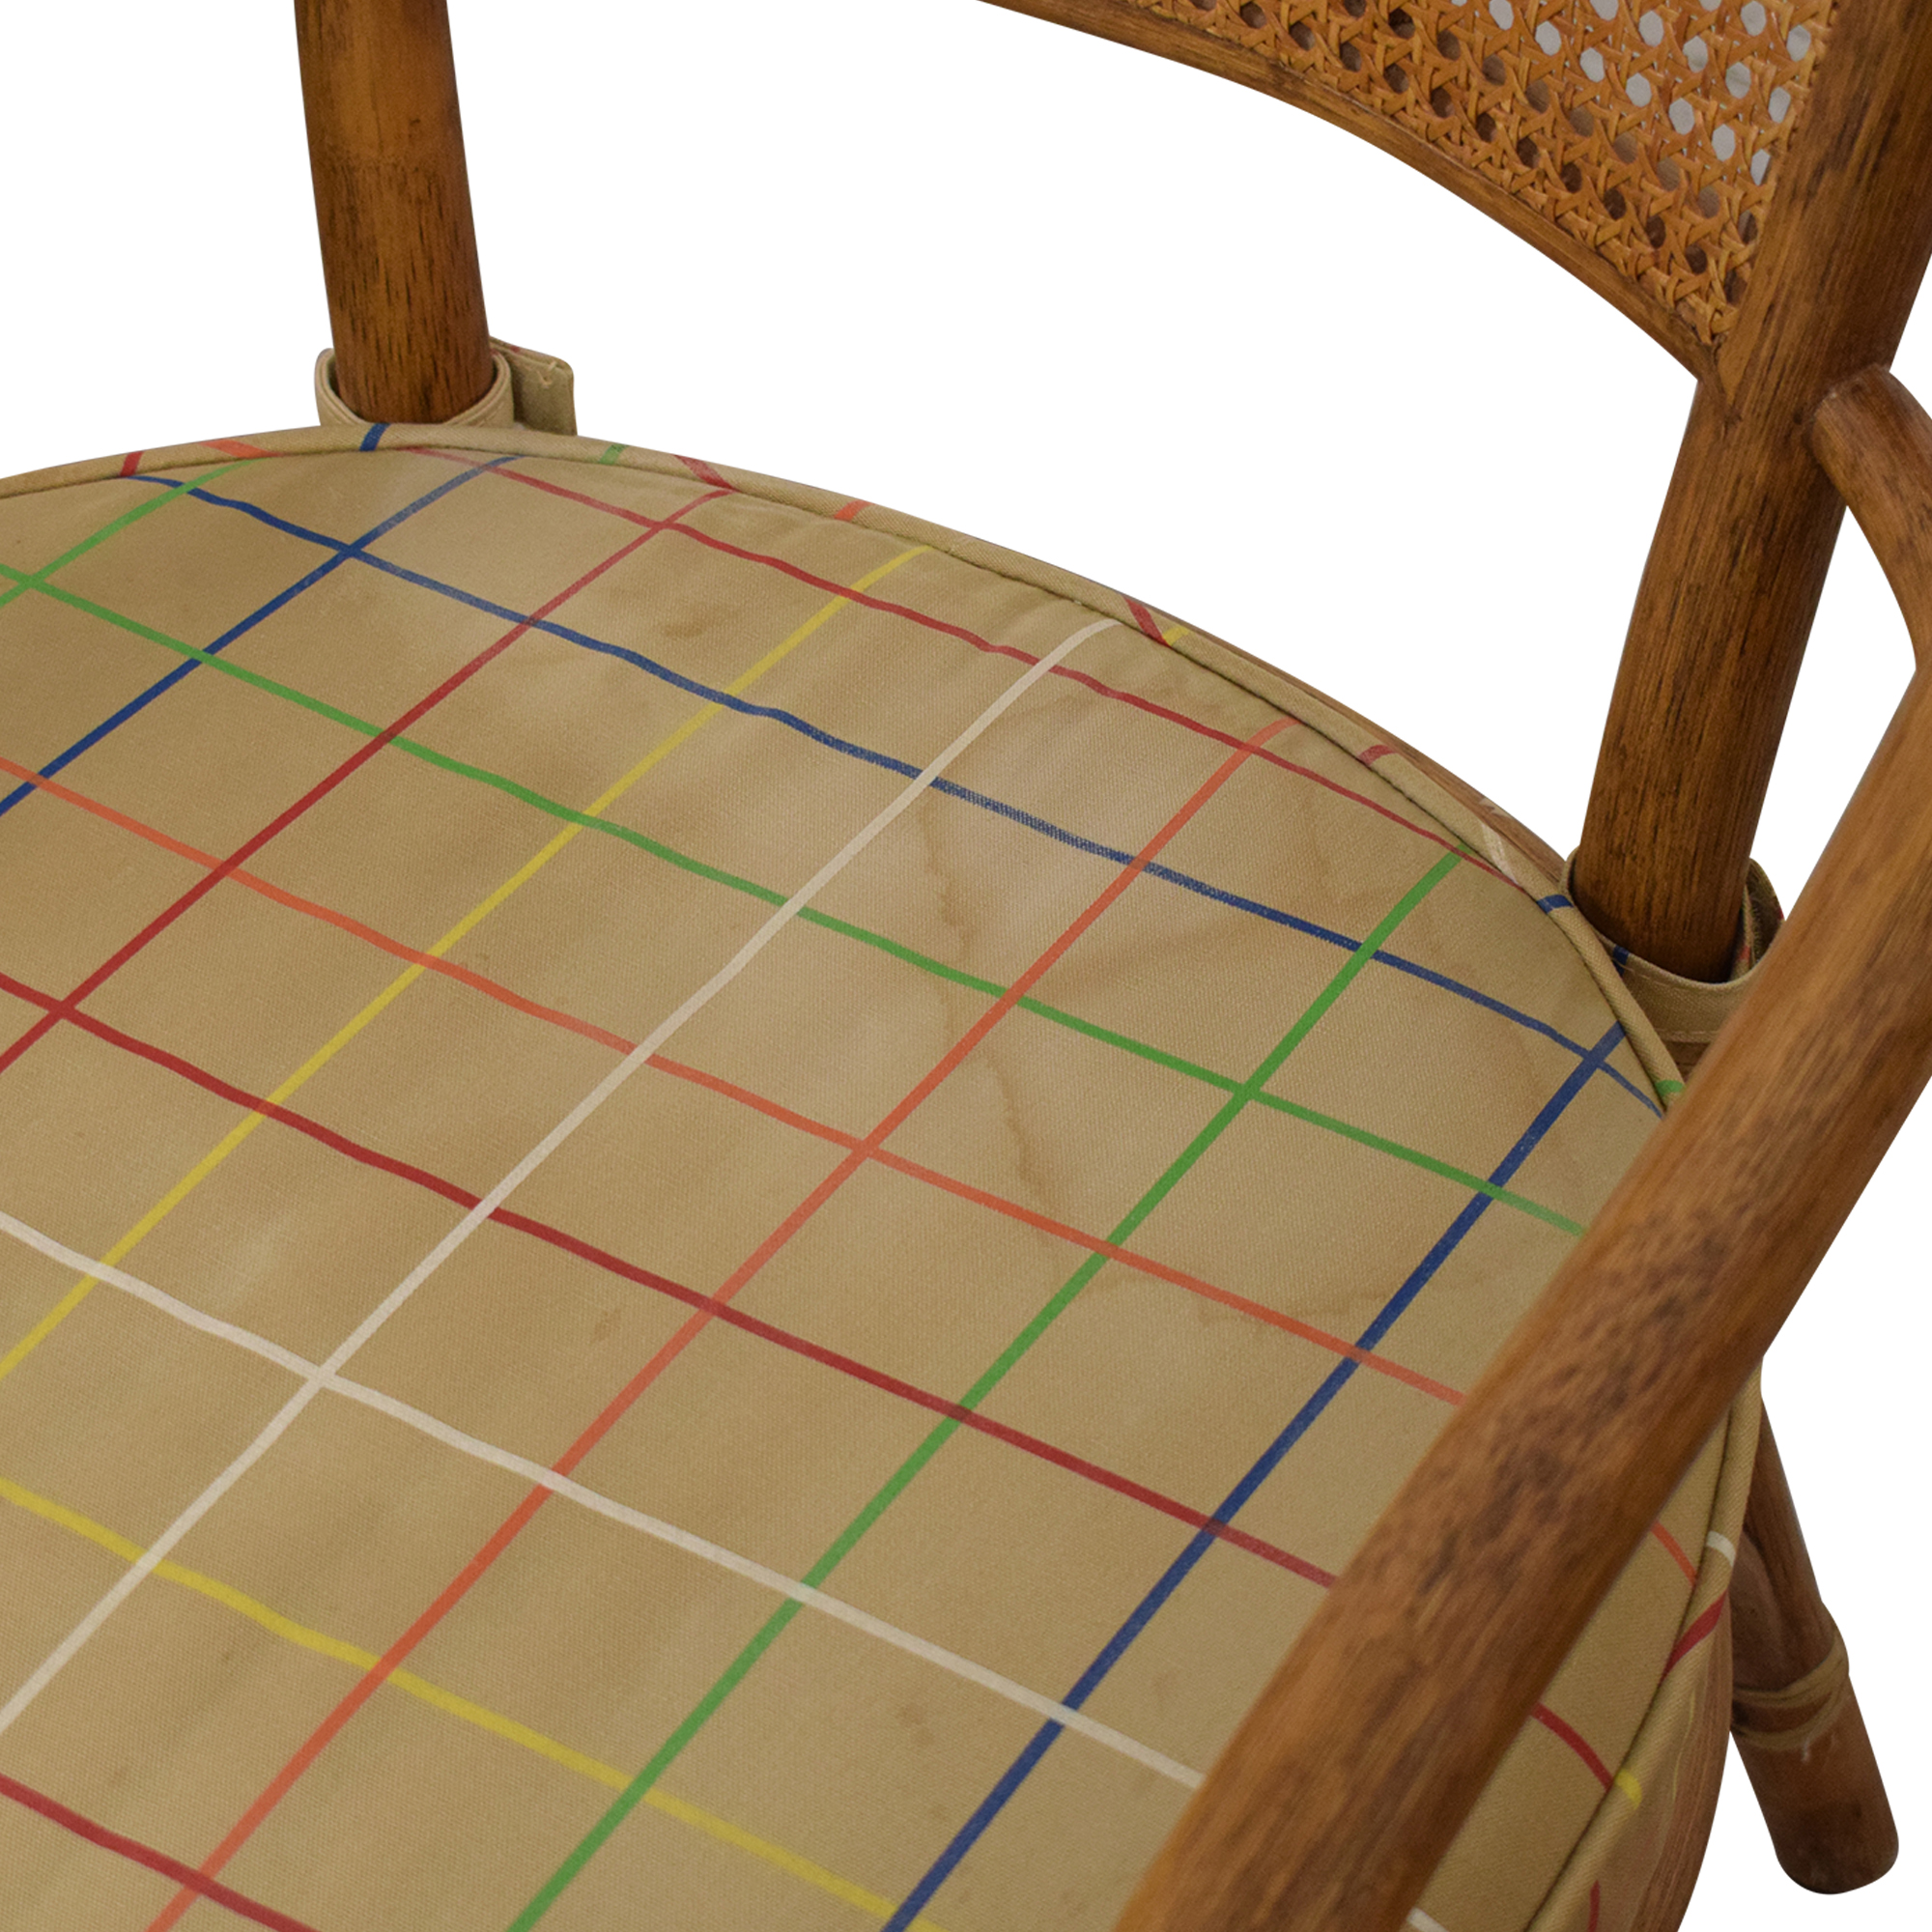 McGuire McGuire Wicker Dining Chairs Chairs